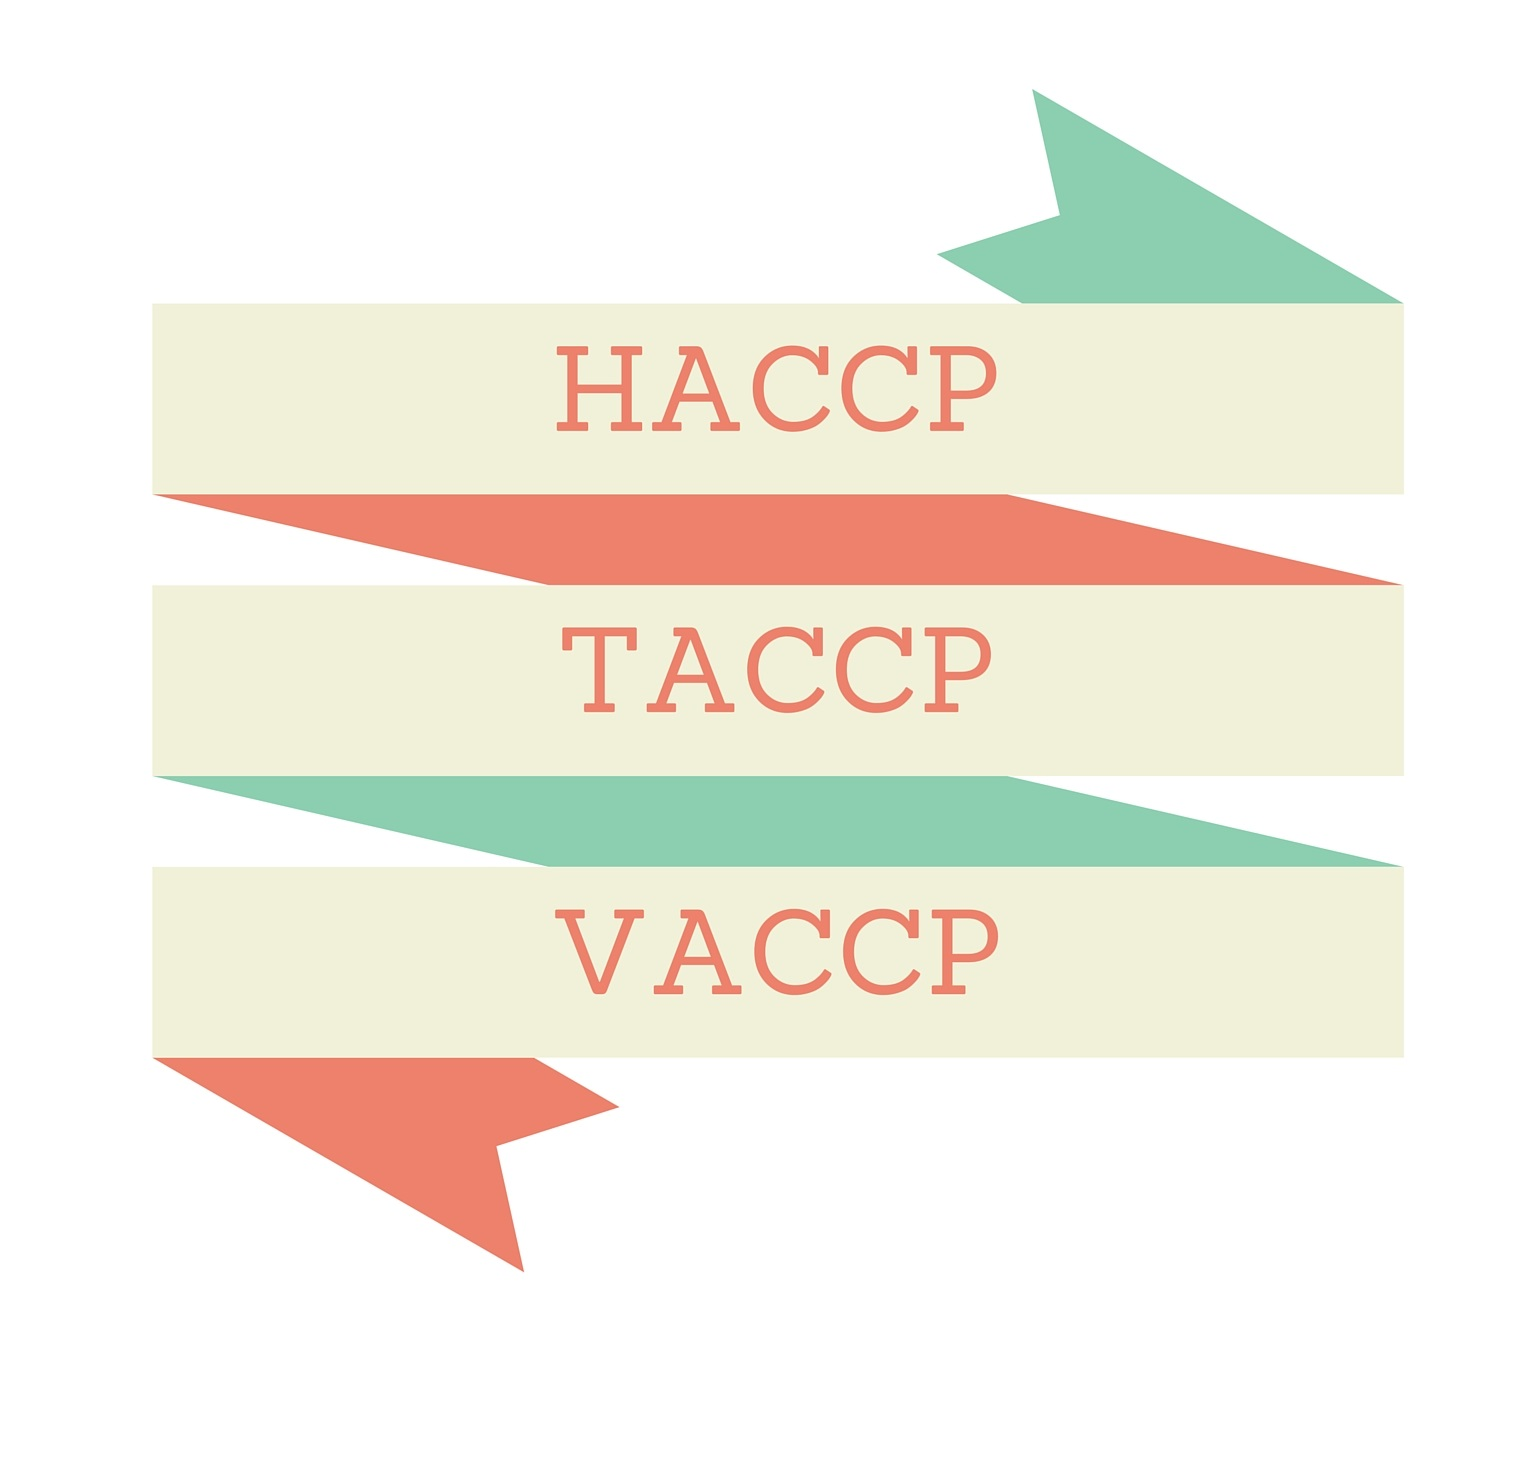 HACCP, TACCP, VACCP – what's the difference?